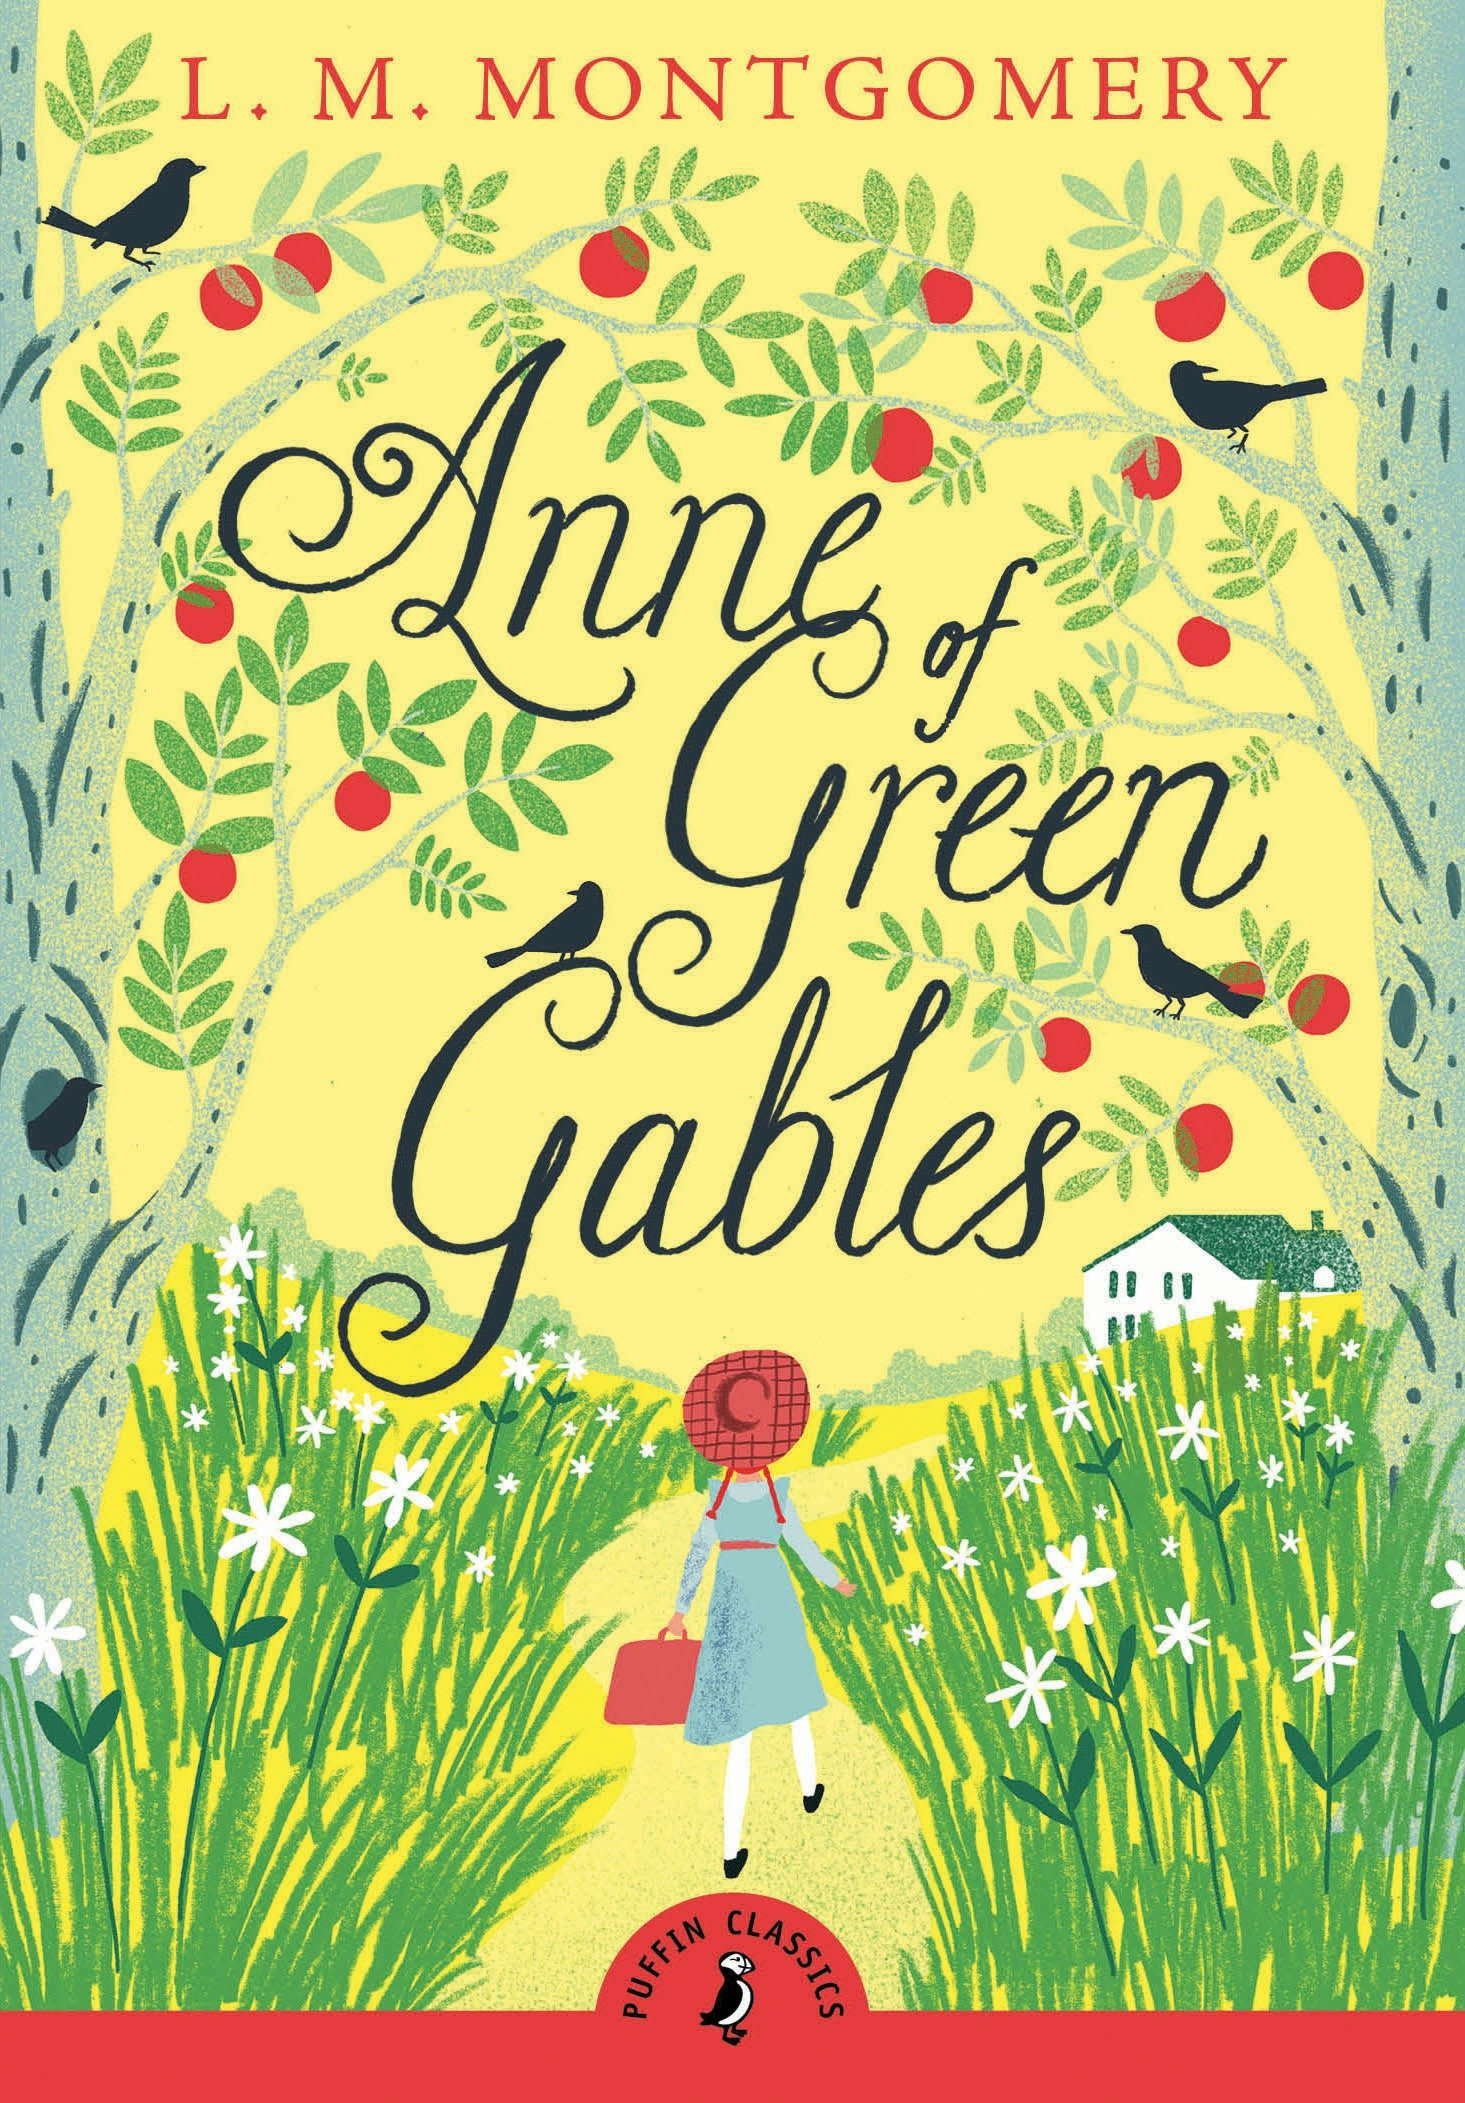 Image result for anne of green gables book